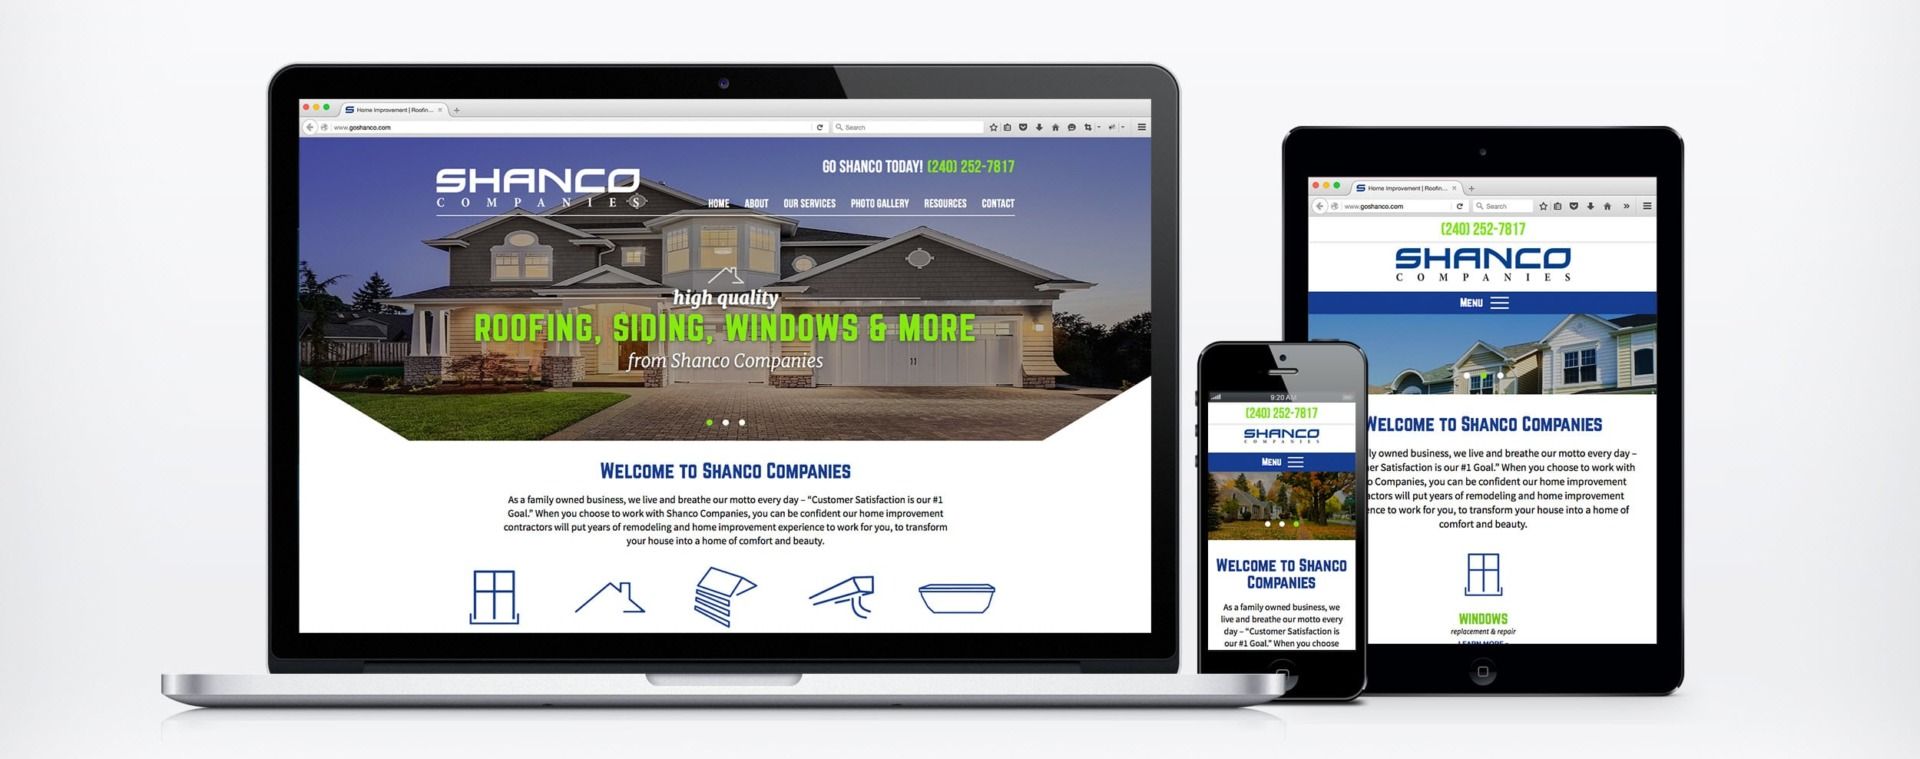 example of a website design for a home service company